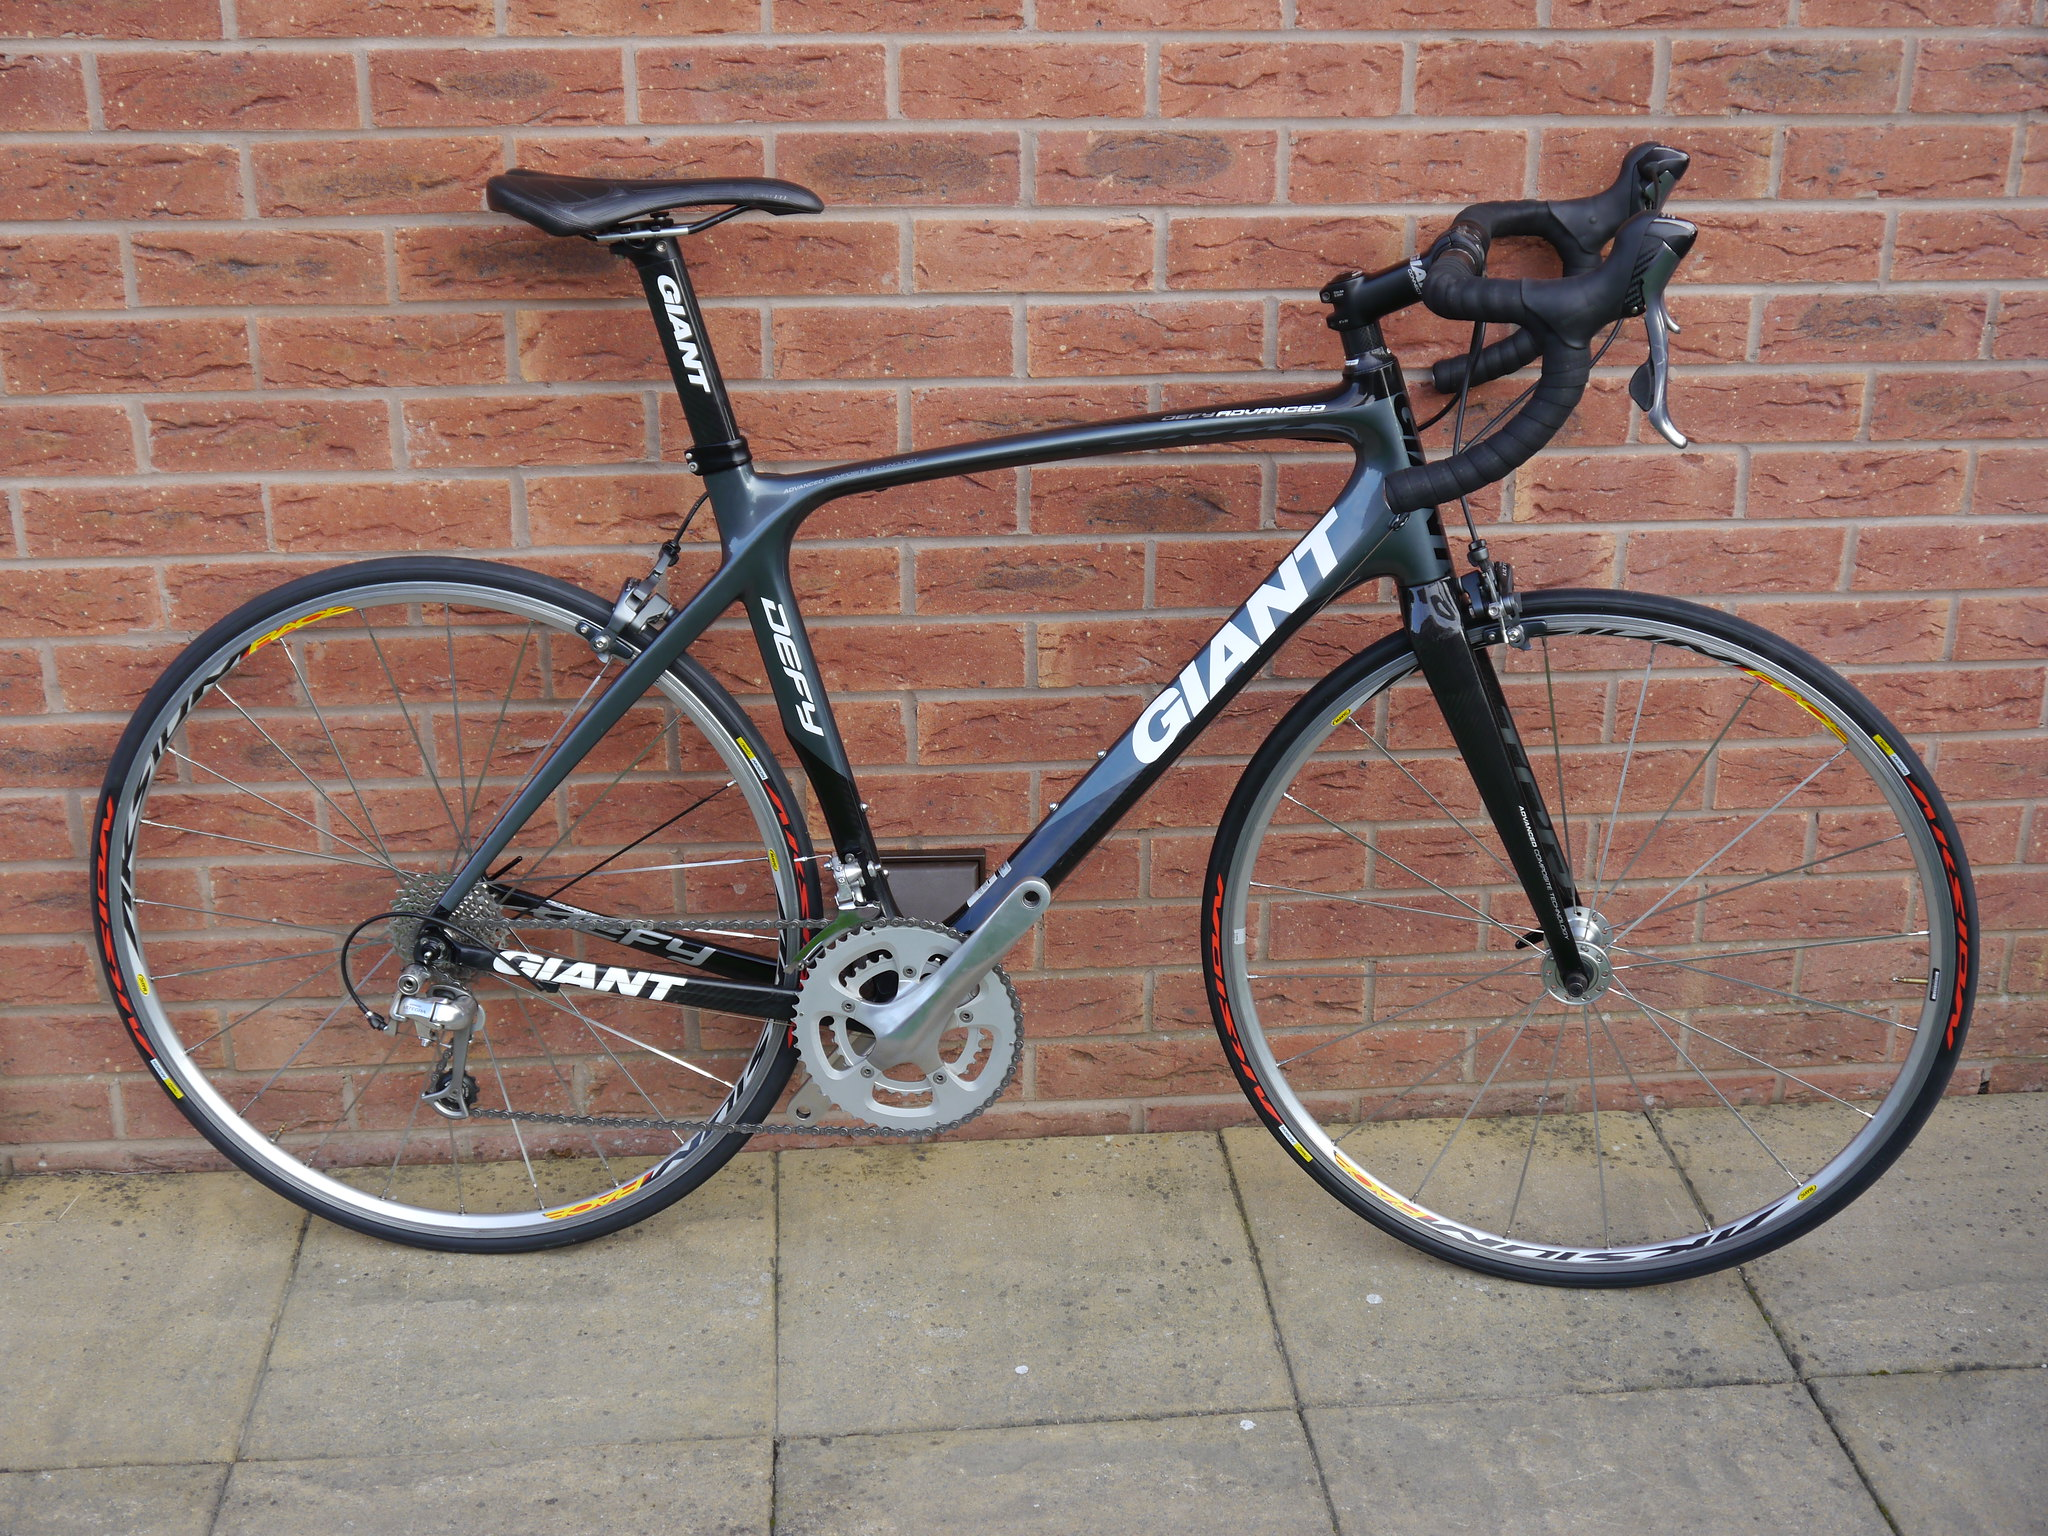 Giant Defy Advanced Carbon Road Bike M L Price Drop Singletrack 105 10 Speed Shimano Drive Train Sti Shifters Ultegra Rear Mech Tiagra Front Chain And 12 28 Cassette R500 Compact Chainset 50 34